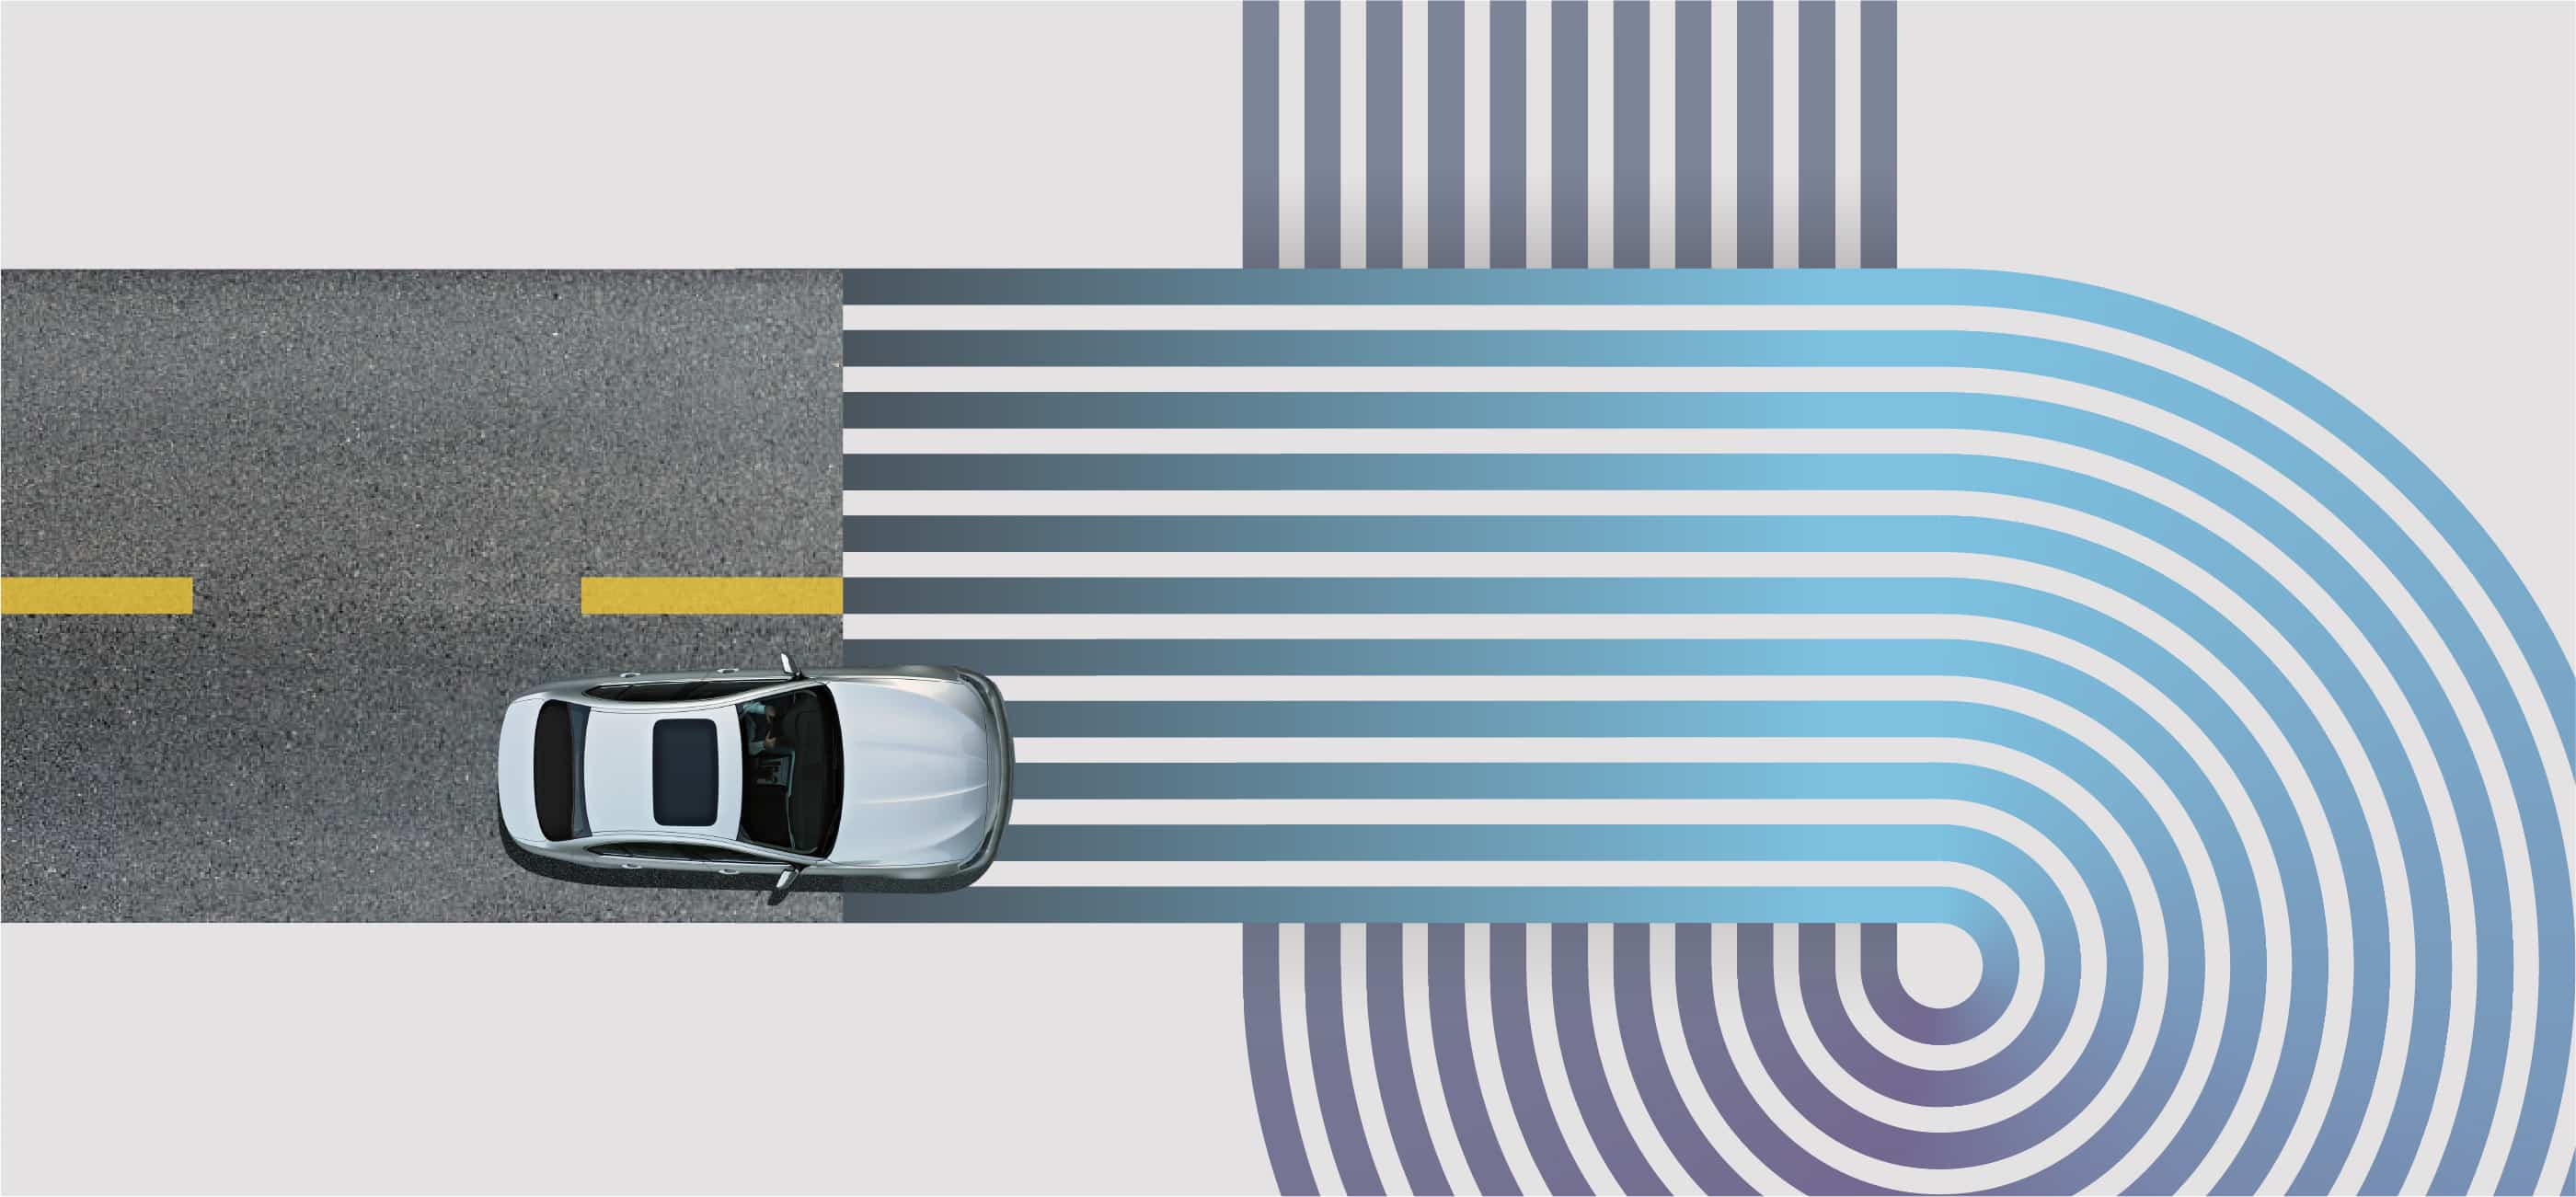 Overhead image of a silver car driving on a road into a blue and purple striped circular graphic on grey background